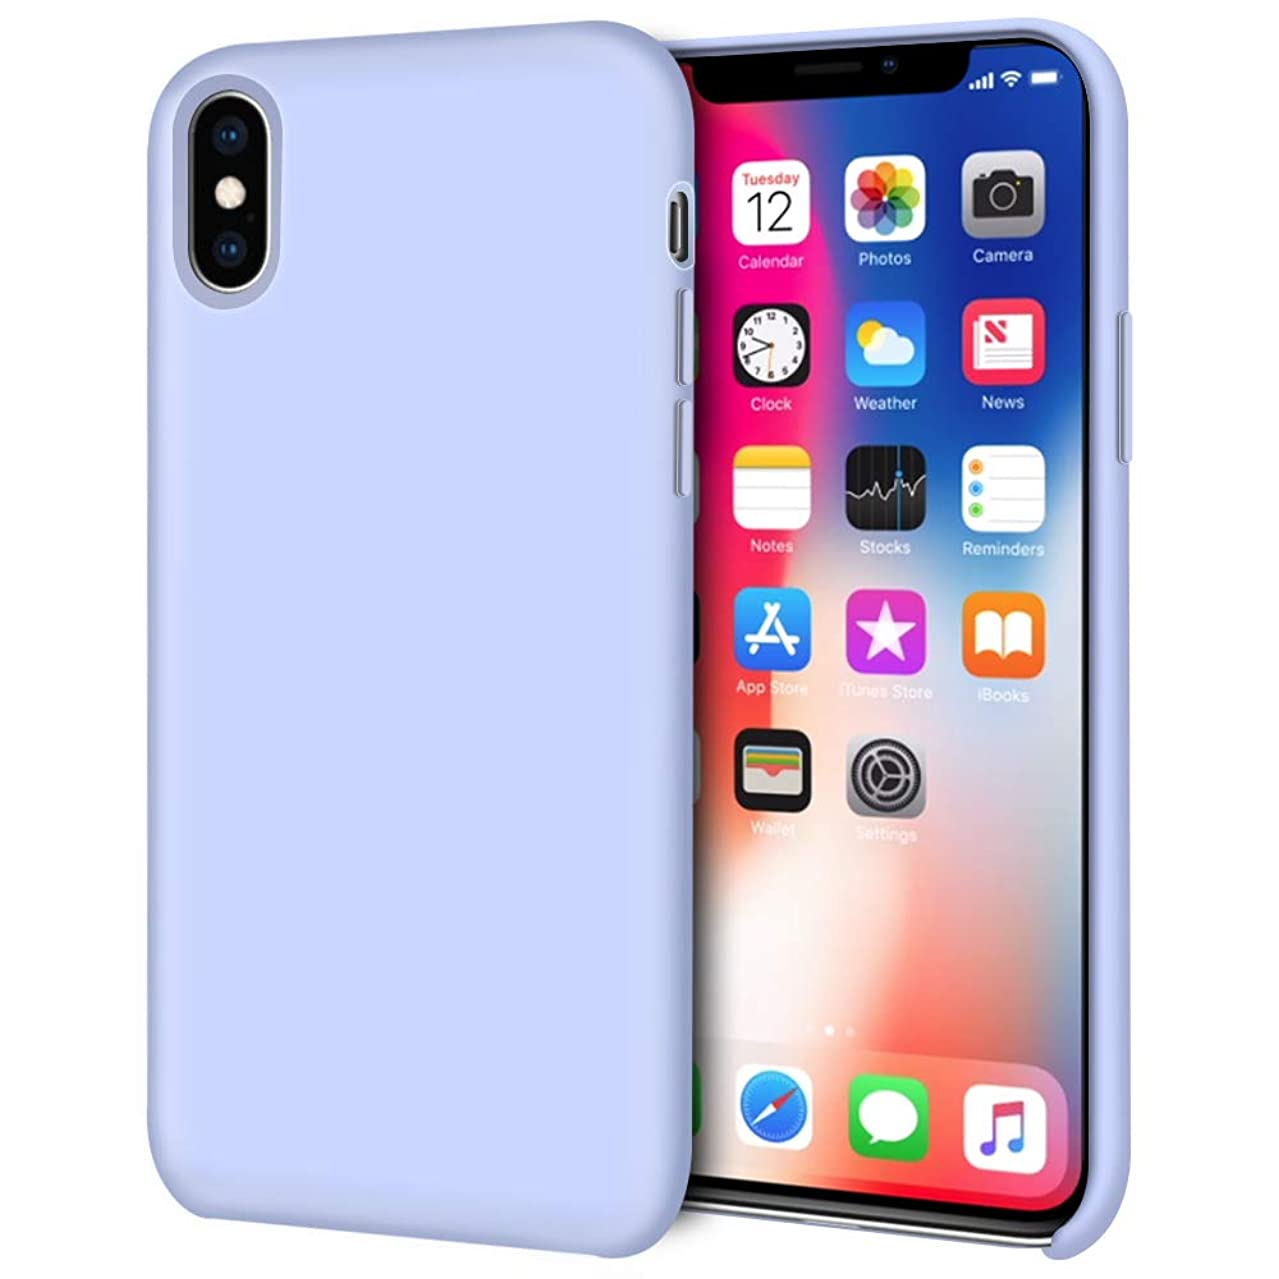 iPhone Xs Case, iPhone X Case, Anuck Anti-Slip Liquid Silicone Gel Rubber Bumper Case Soft Microfiber Lining Cushion Slim Hard Shell Shockproof Protective Case Cover for iPhone X/XS 5.8